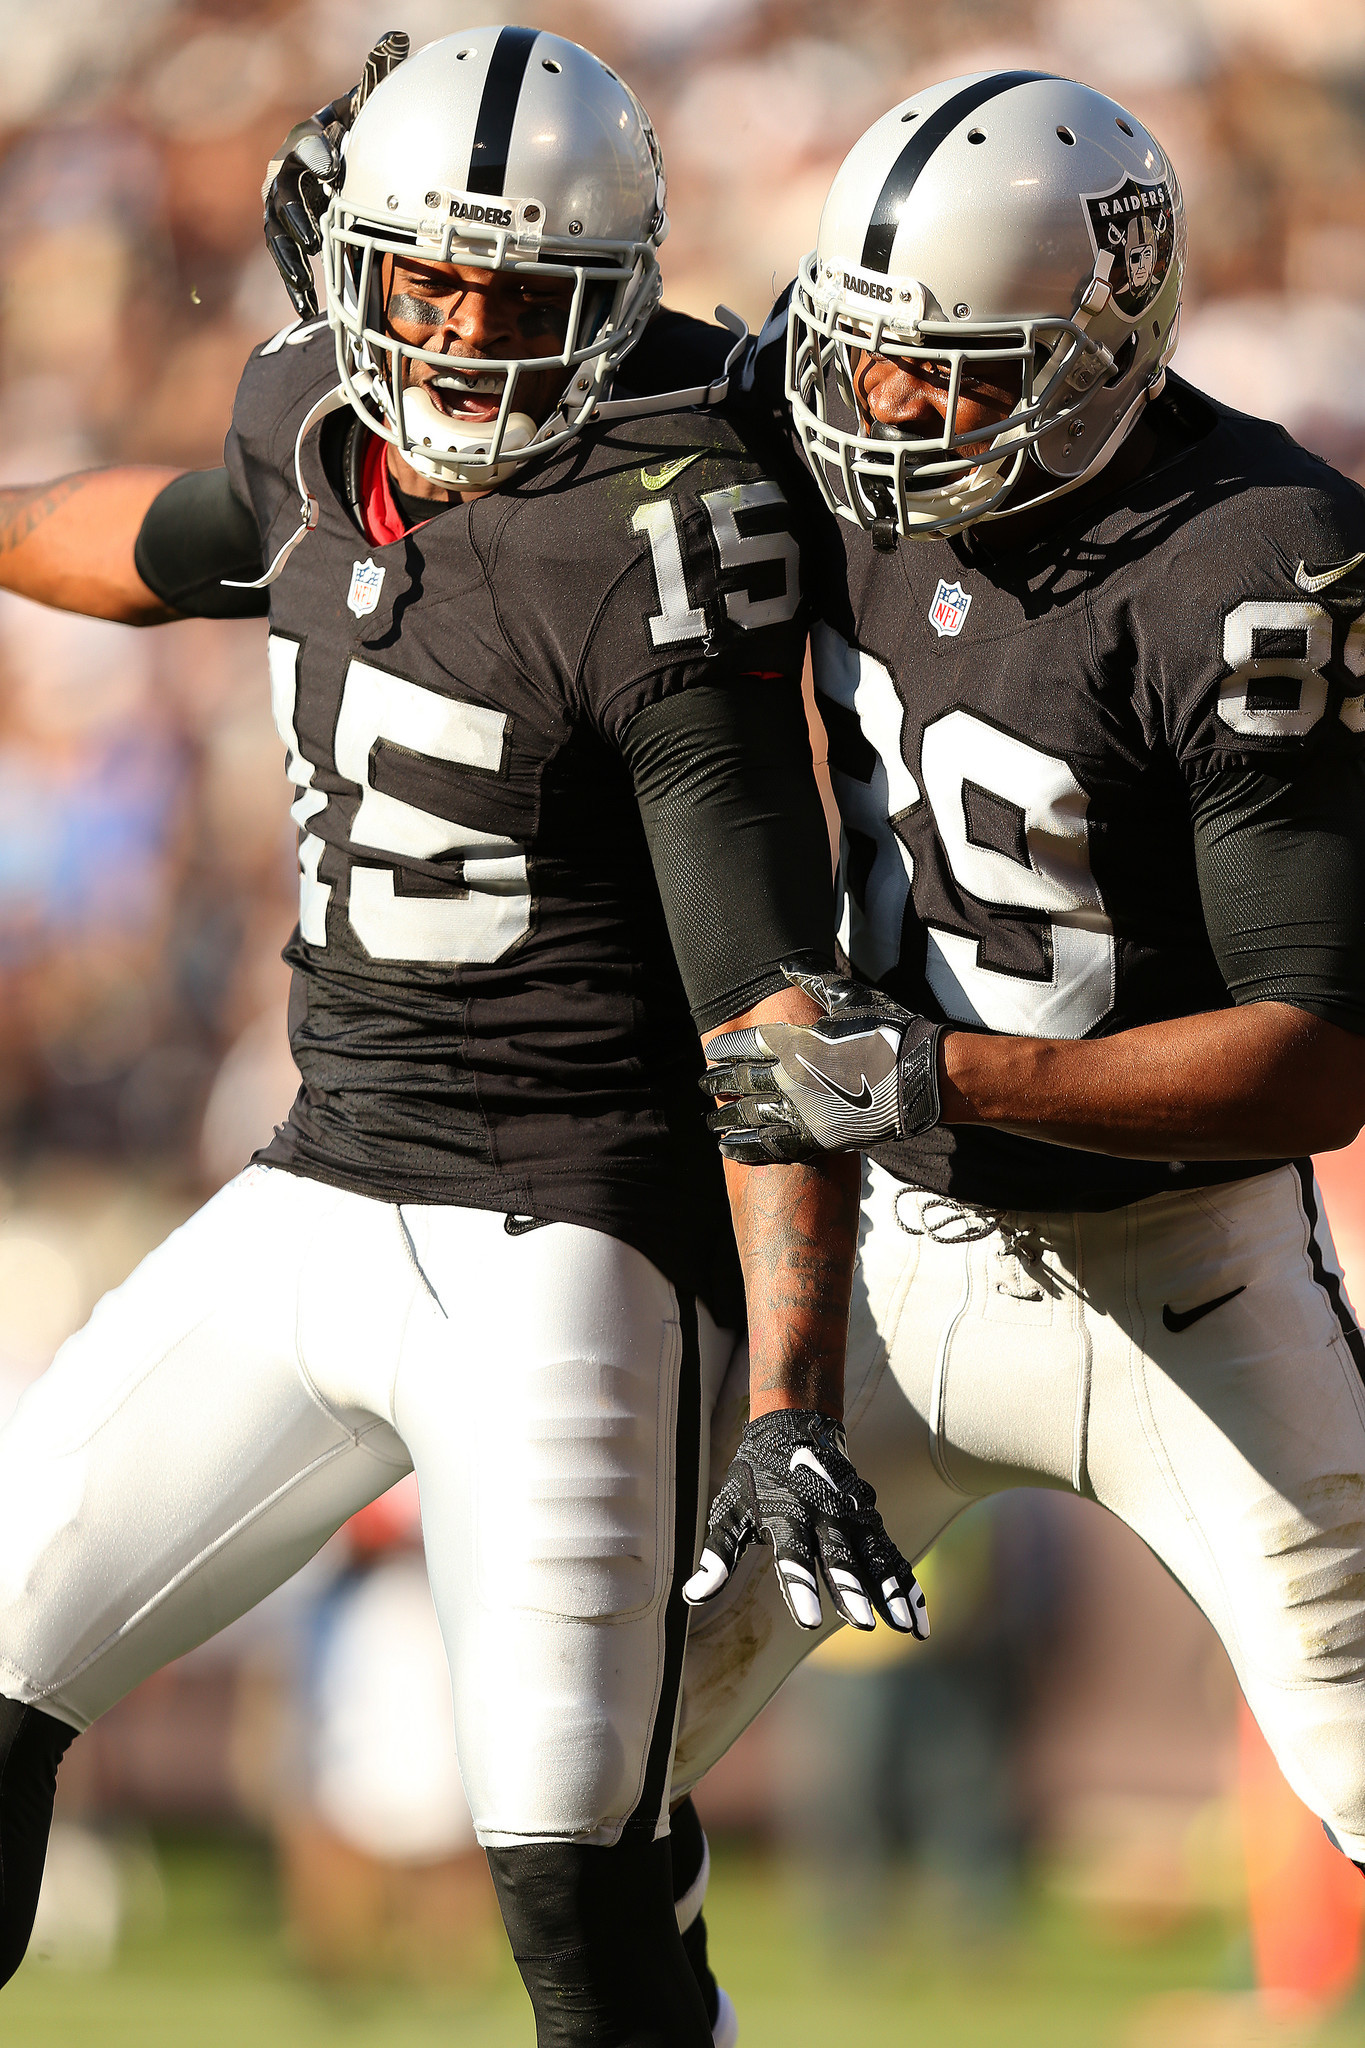 Containing Raiders receivers Amari Cooper Michael Crabtree a key